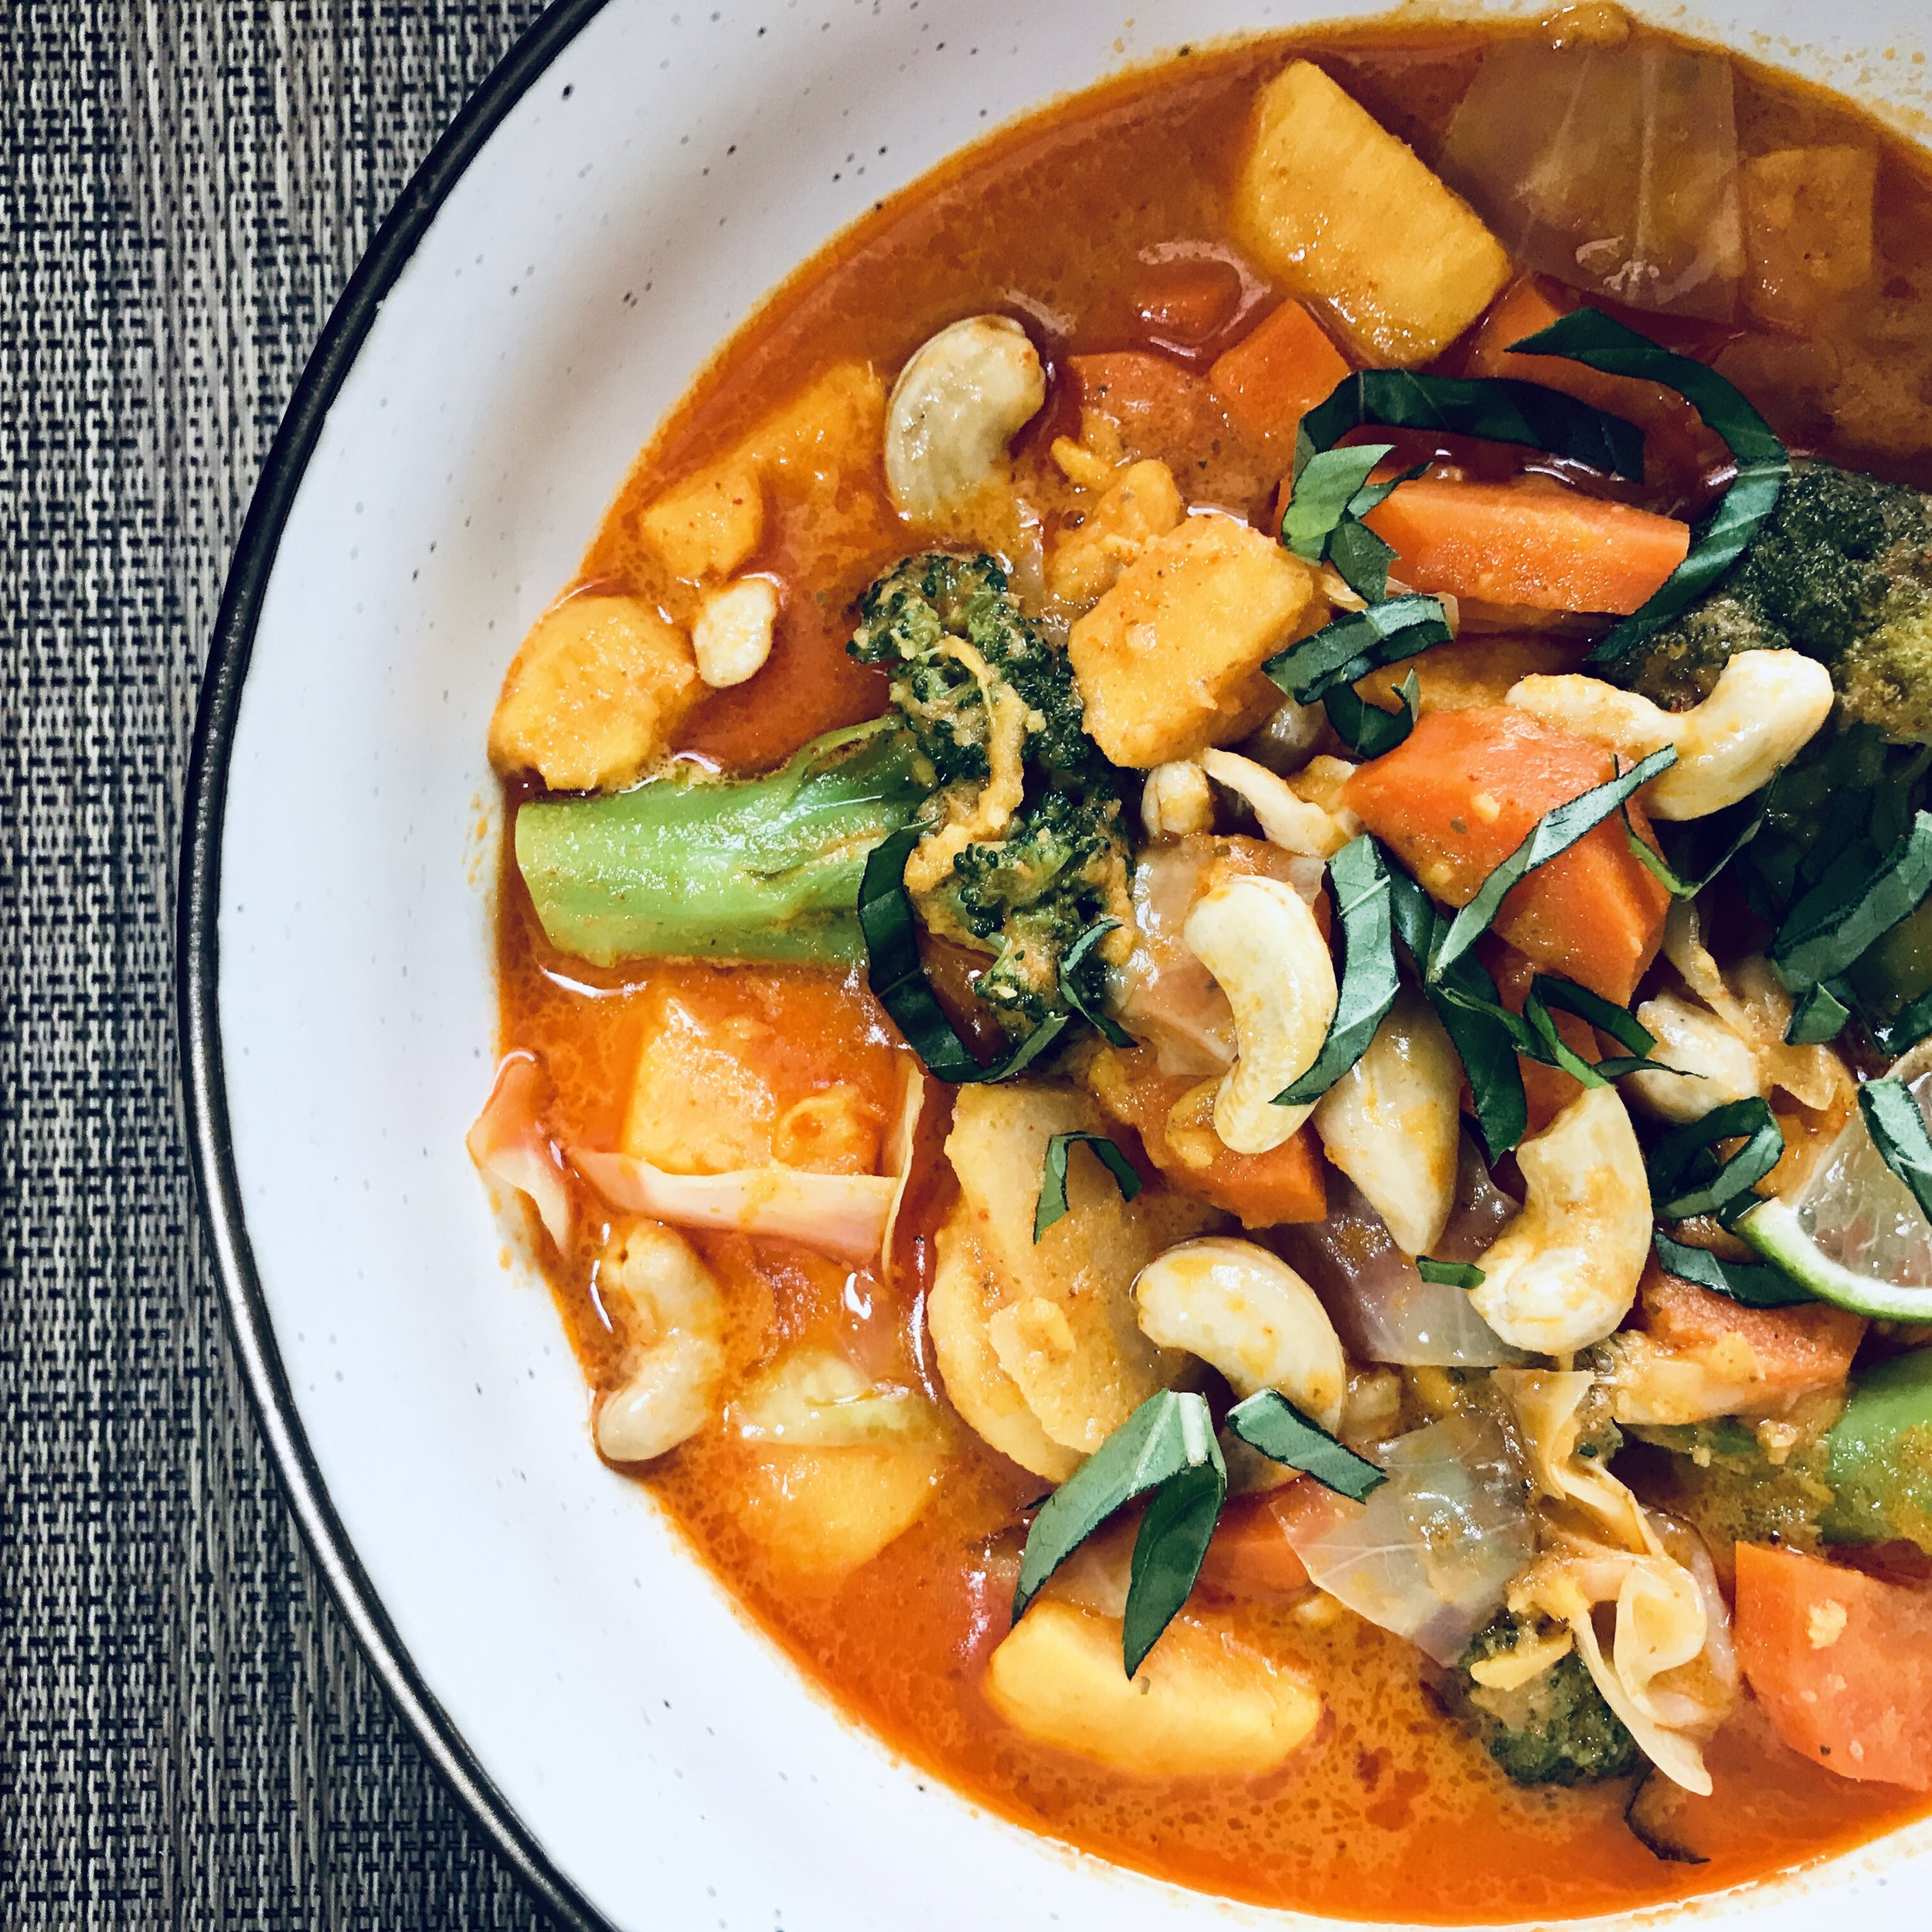 Coconut curry with mixed vegetables, cashew nuts and LOVE!